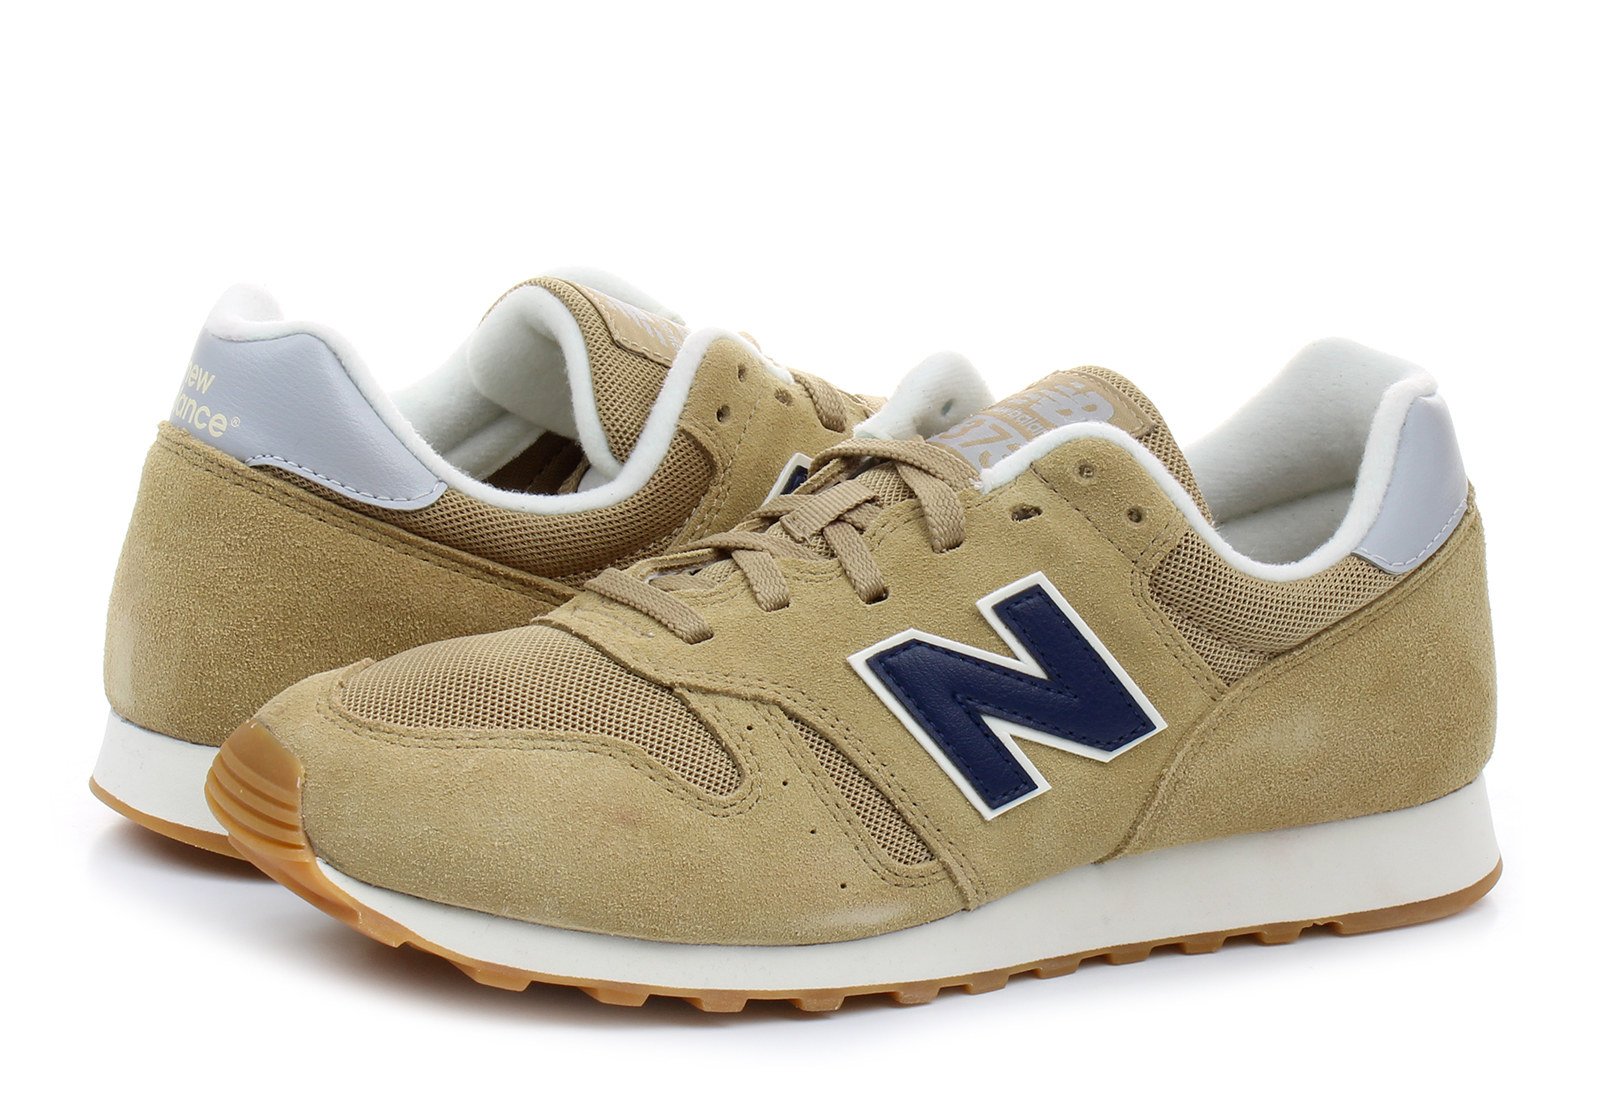 New Balance Shoes - Ml373 - ML373OTO - Online shop for sneakers ... f457d4e68b